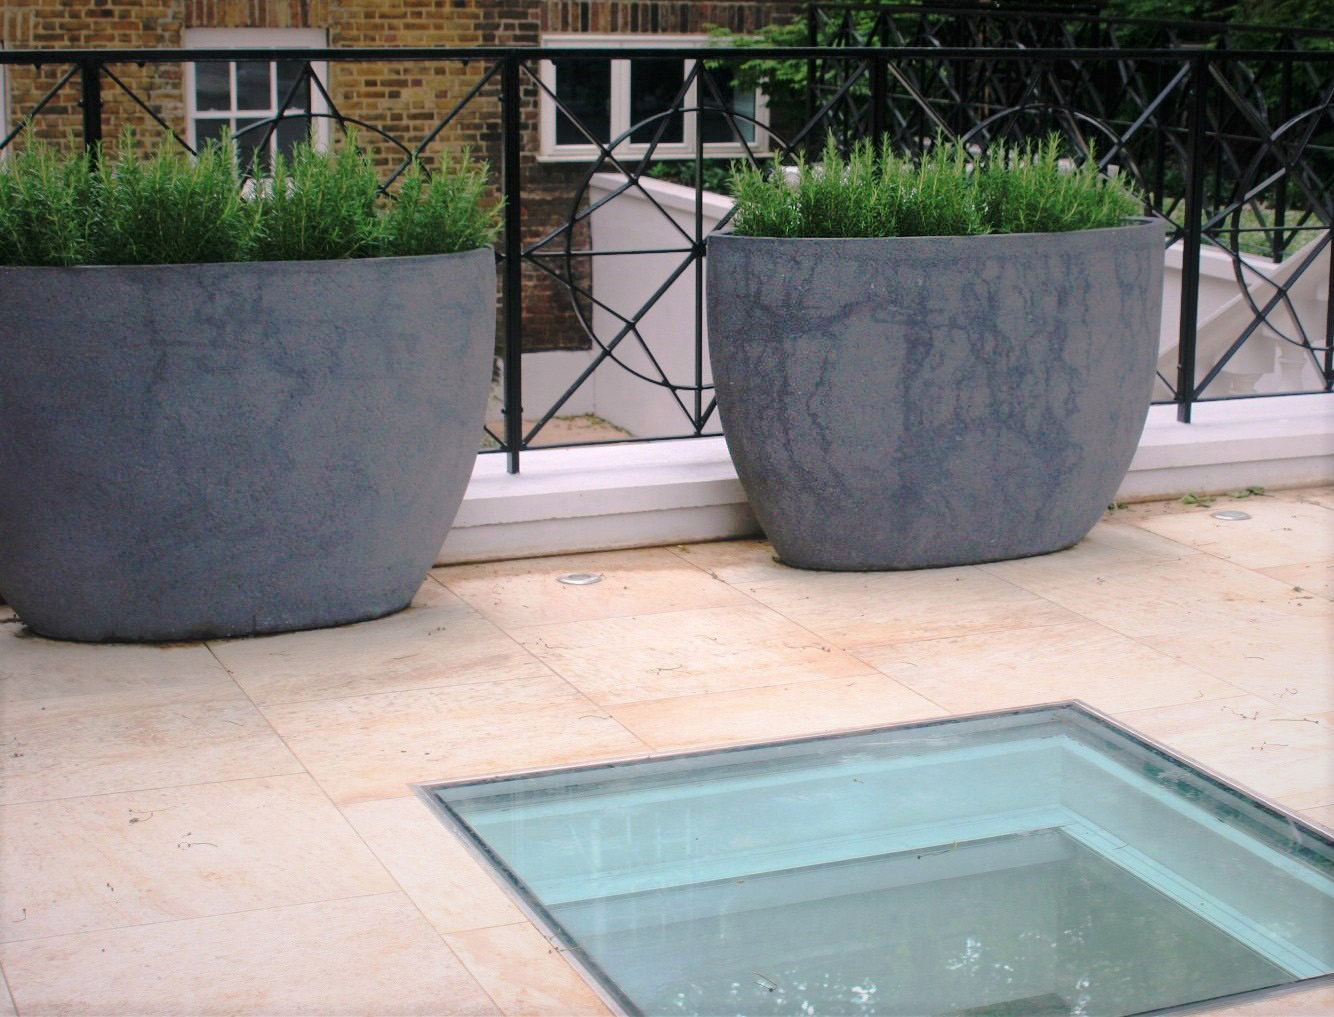 City Retreat Garden London. Upper terrace with concrete planters. Rae Wilkinson Garden and Landscape Design - Garden Designer Sussex, Surrey, London, South-East England